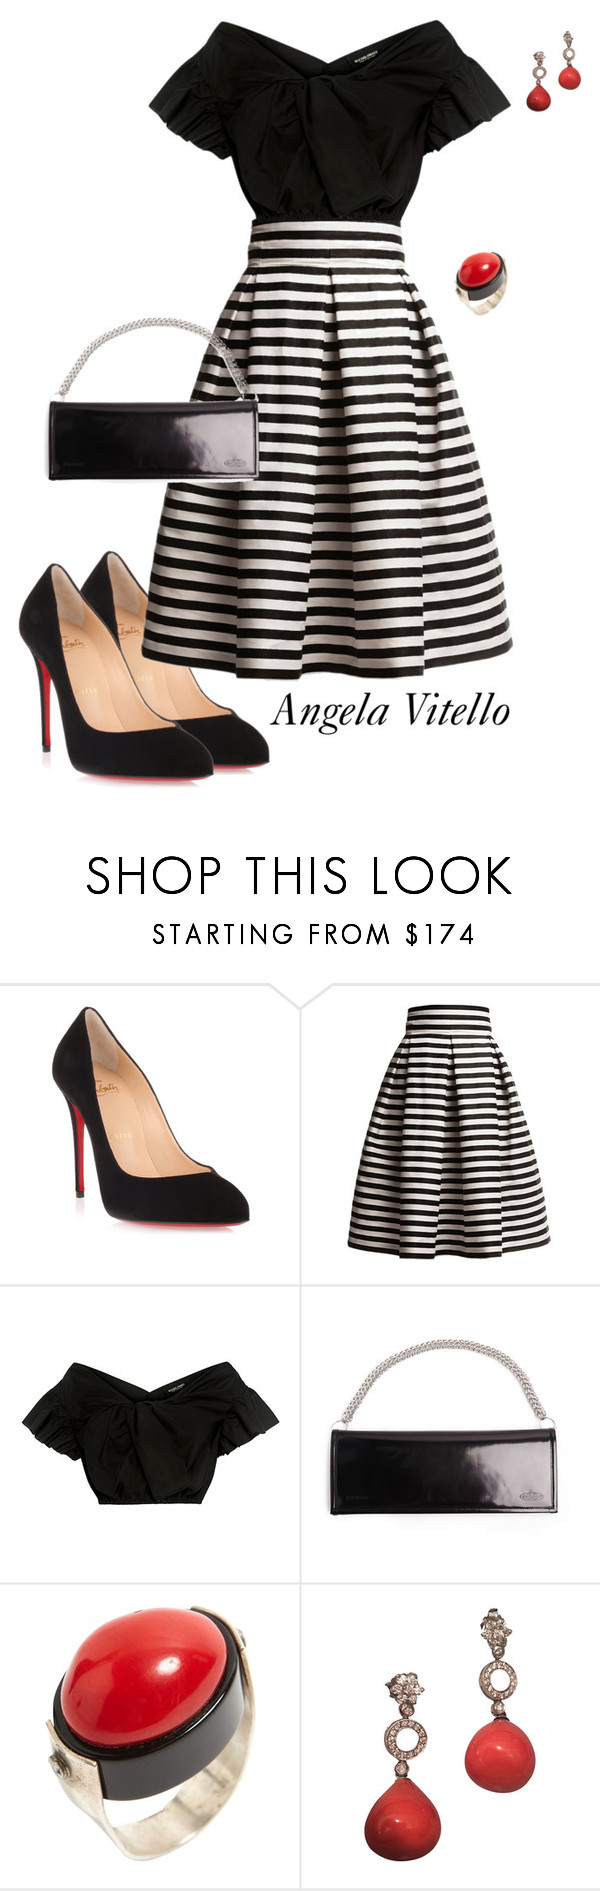 """Untitled #984"" by angela-vitello ❤ liked on Polyvore featuring Christian Louboutin, Rumour London, Rachel Comey and Vetements"